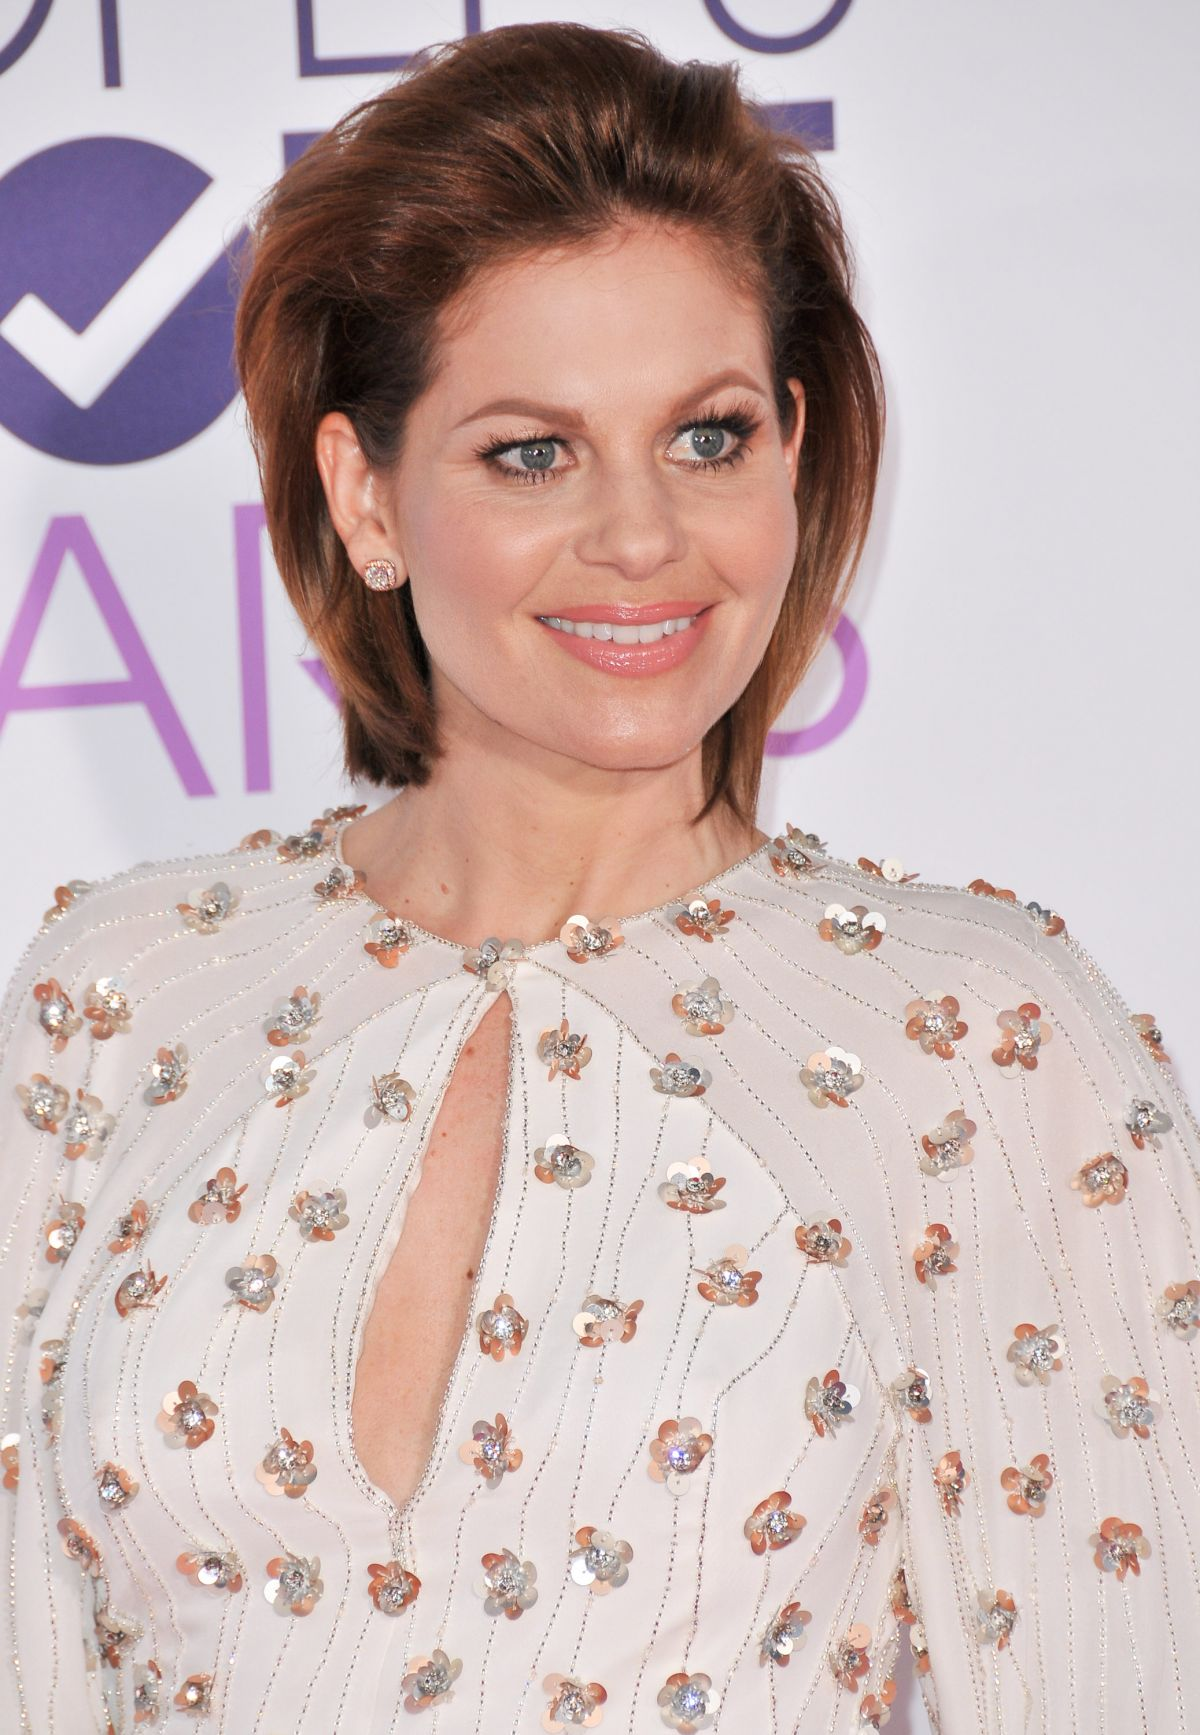 CANDACE CAMERON BURE at 43rd Annual People's Choice Awards in Los Angeles 01/18/2017